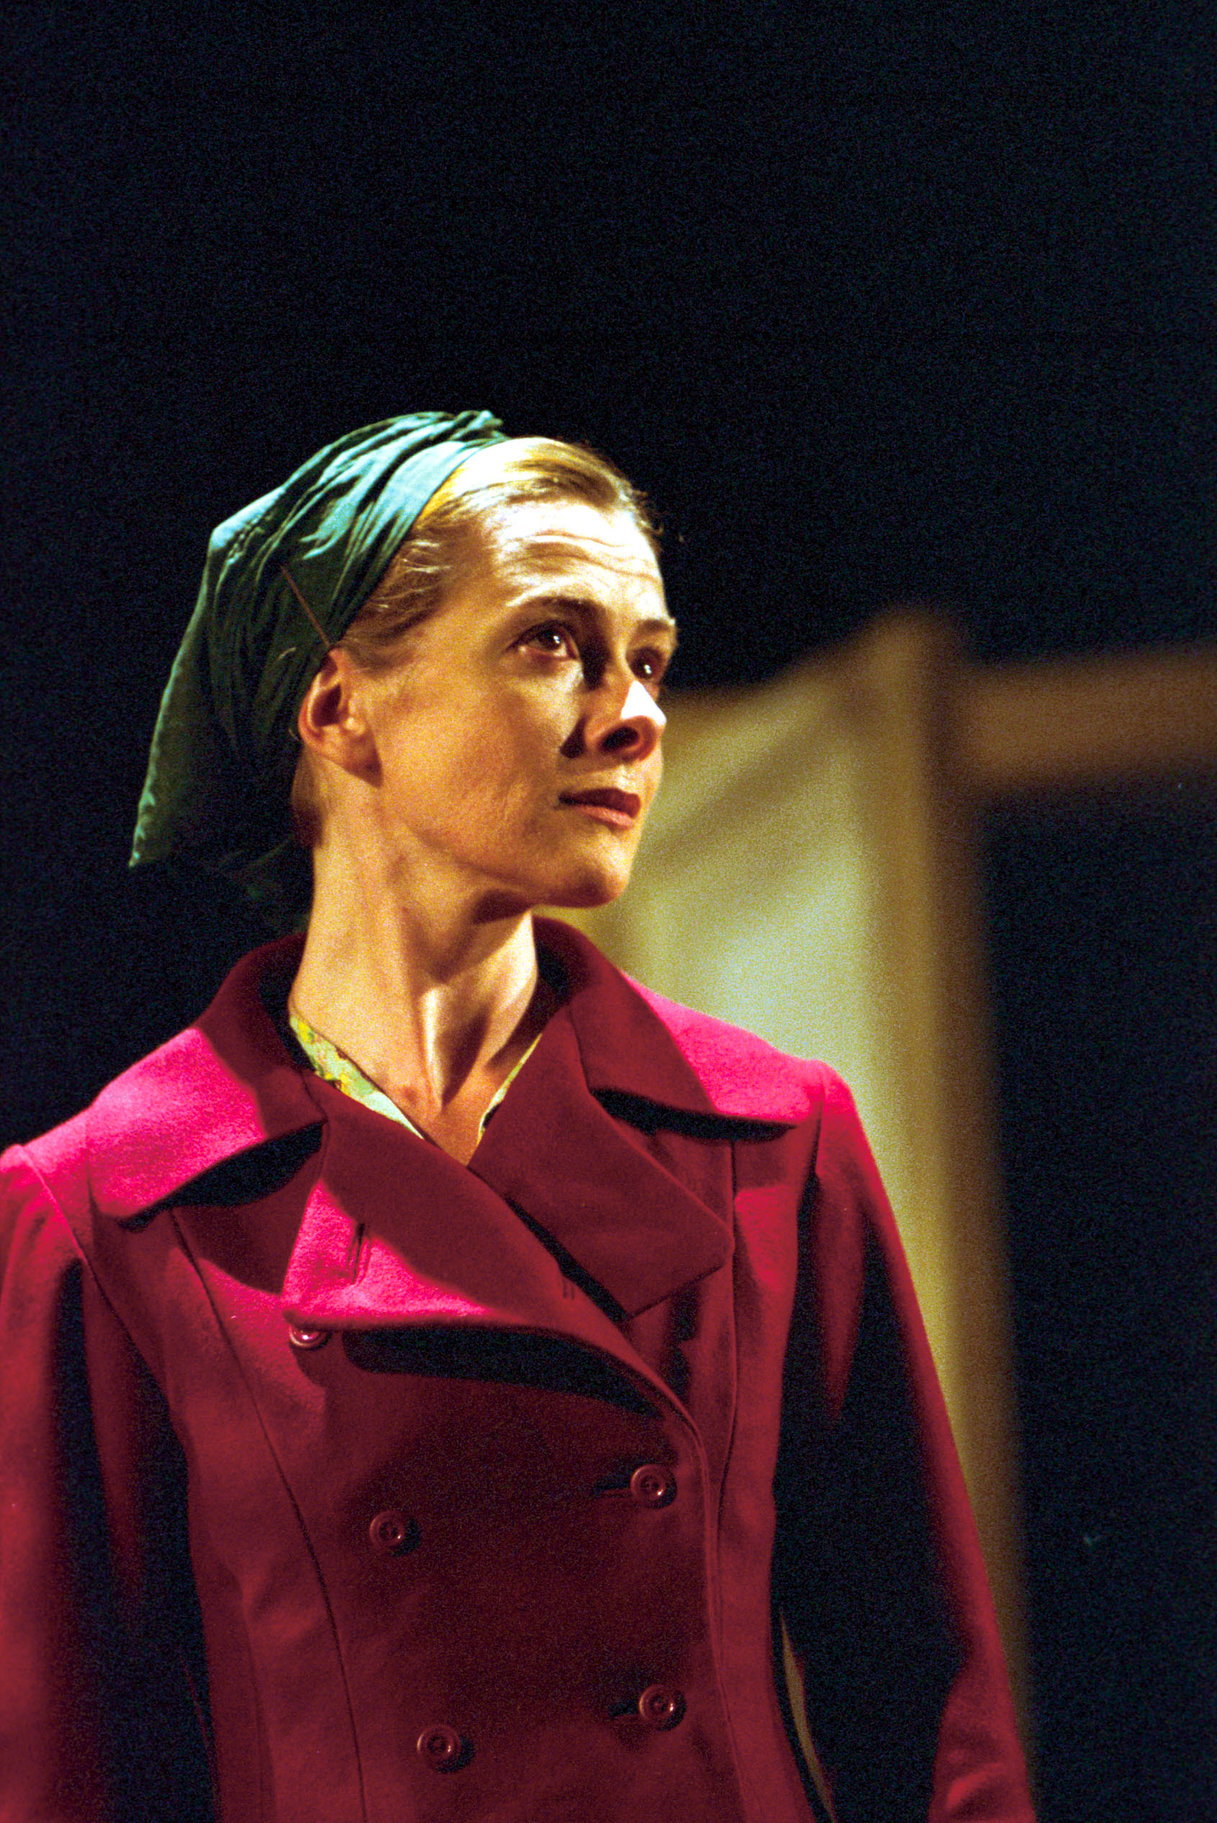 A woman in a burgundy coat and green head scarf.